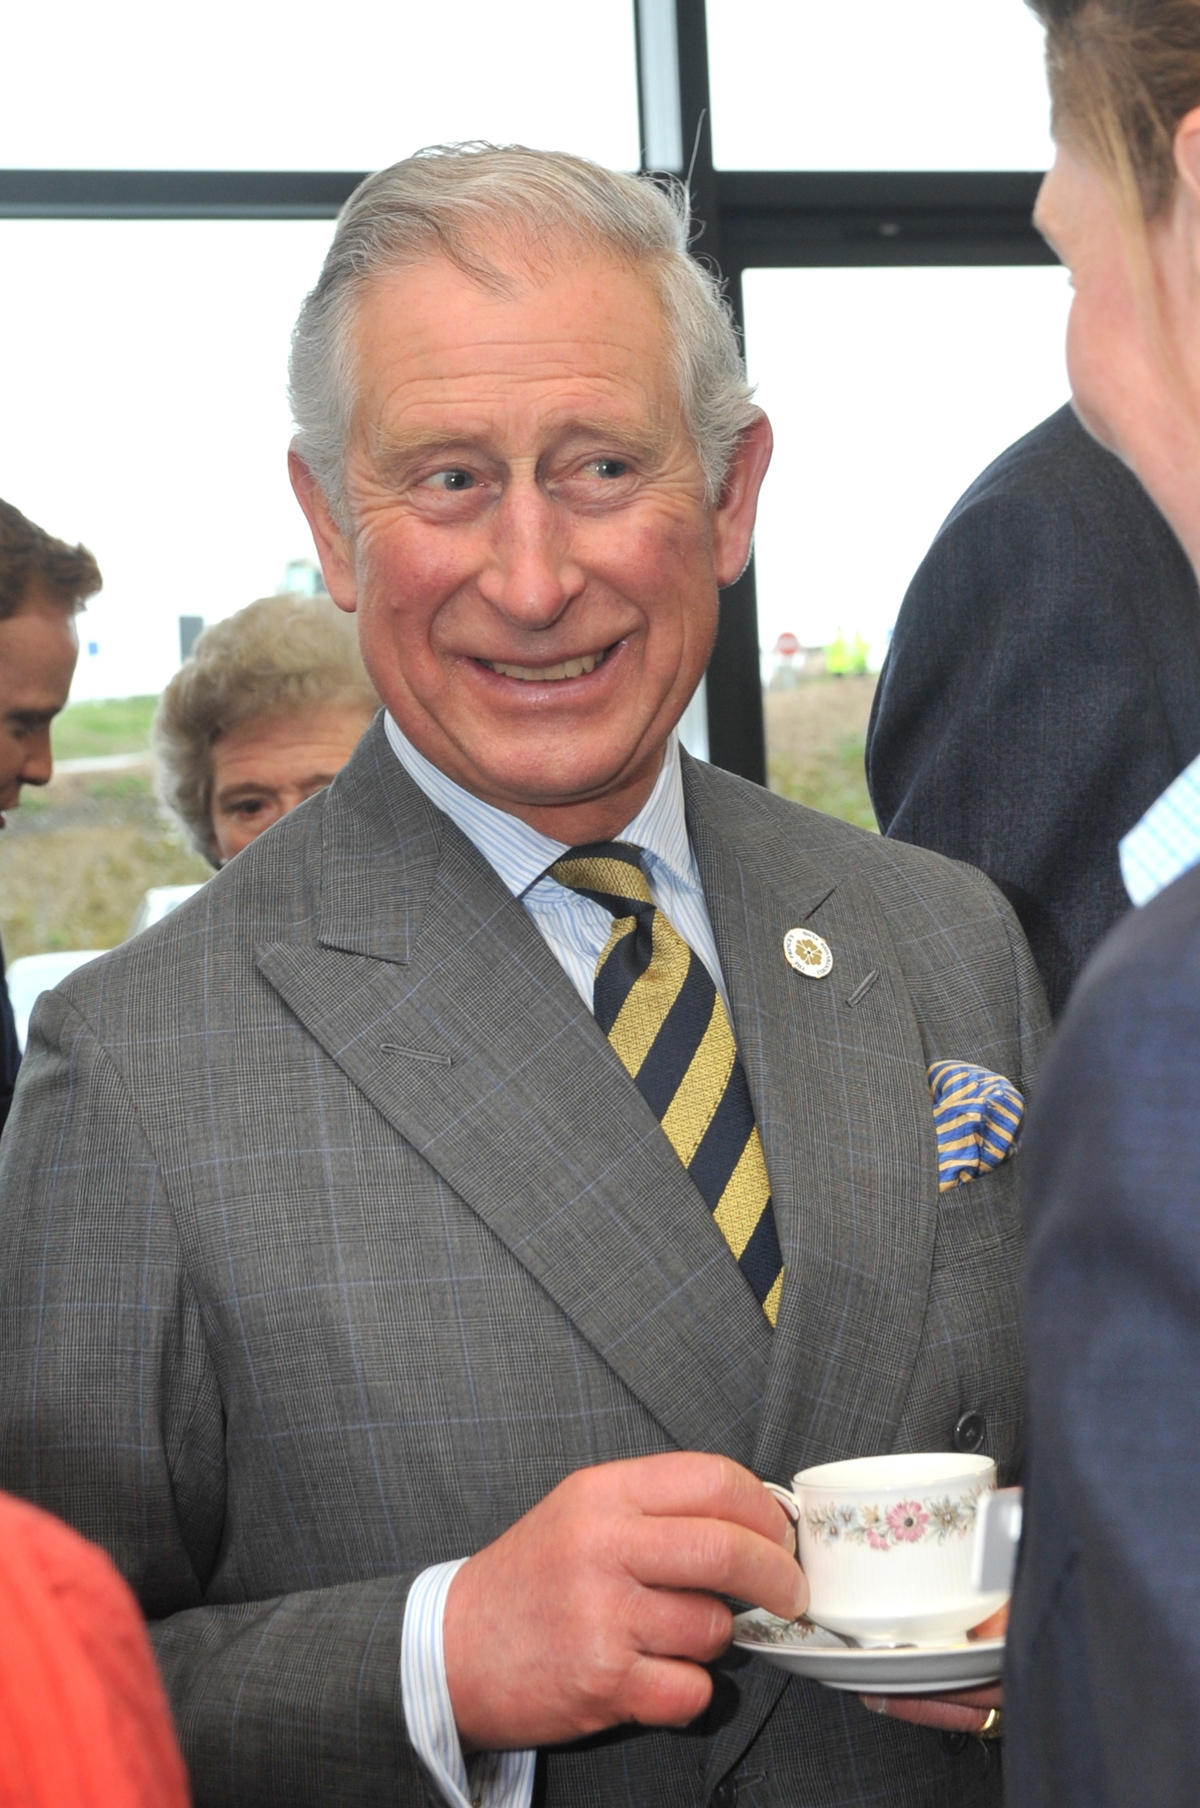 Delight as Prince Charles visits South Lakeland